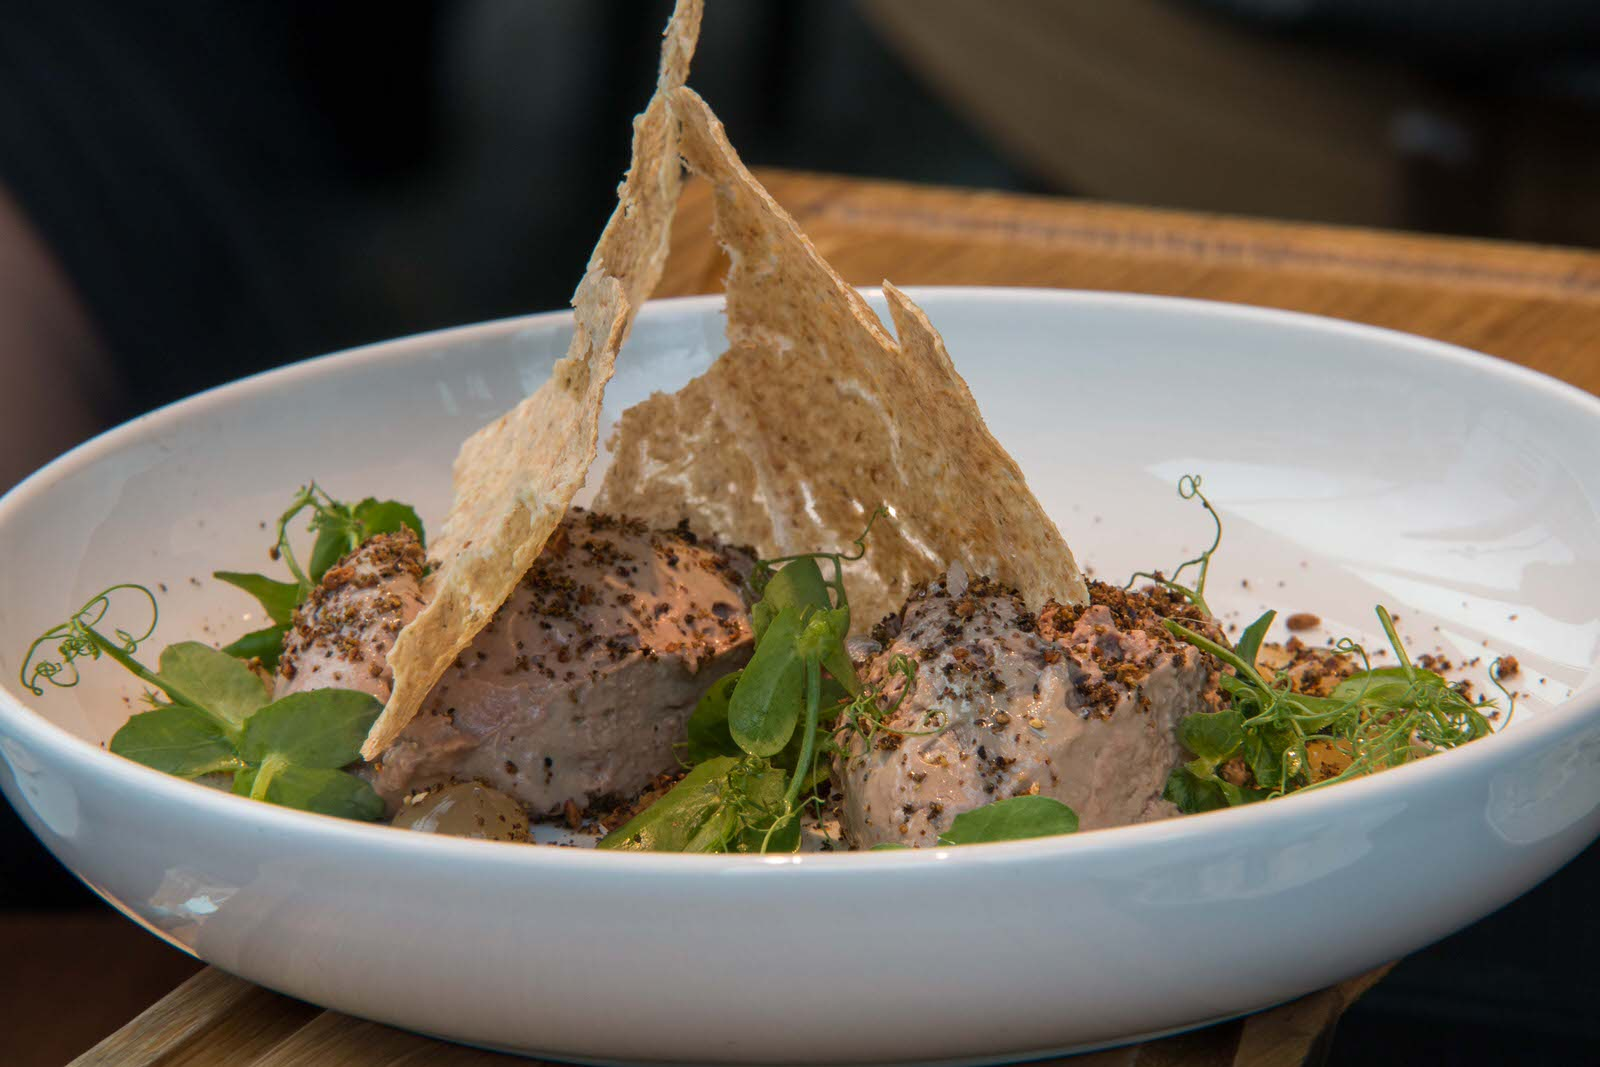 Chicken liver mousse with juniper berry gel and oatmeal chips